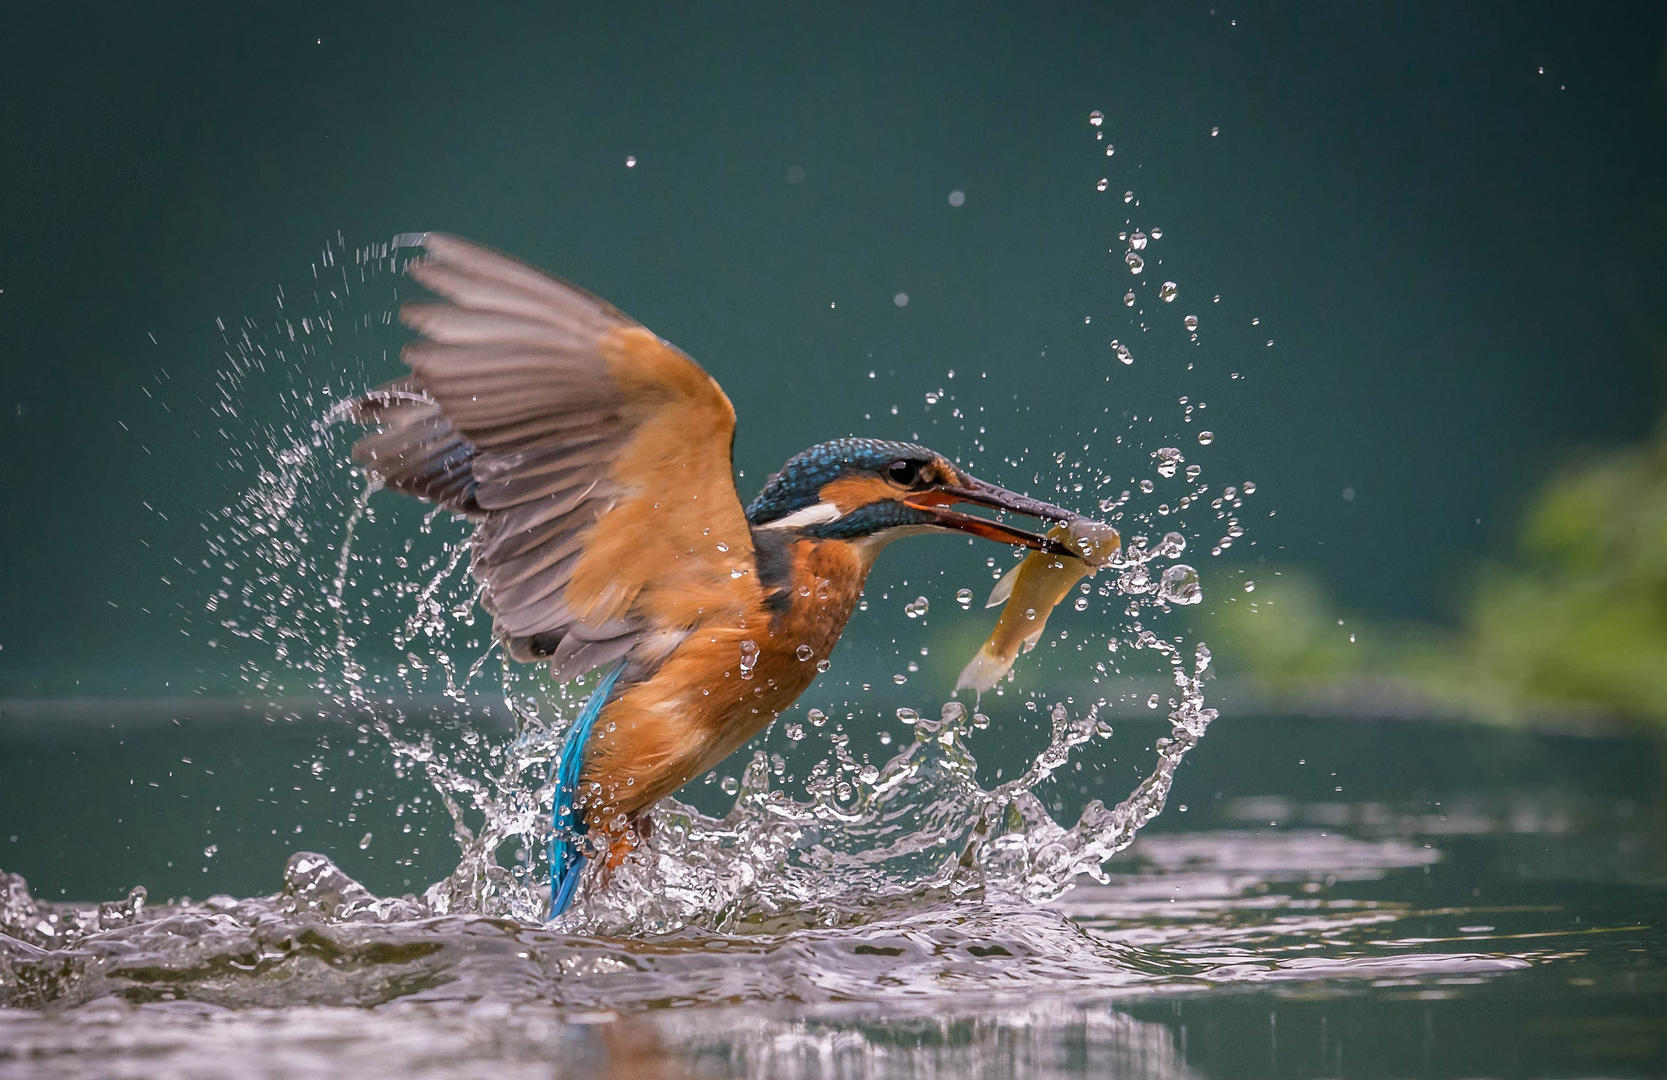 Female Kingfisher with Breakfast, © Dave Atkinson, 3rd place, Digital Camera Photographer of the Year